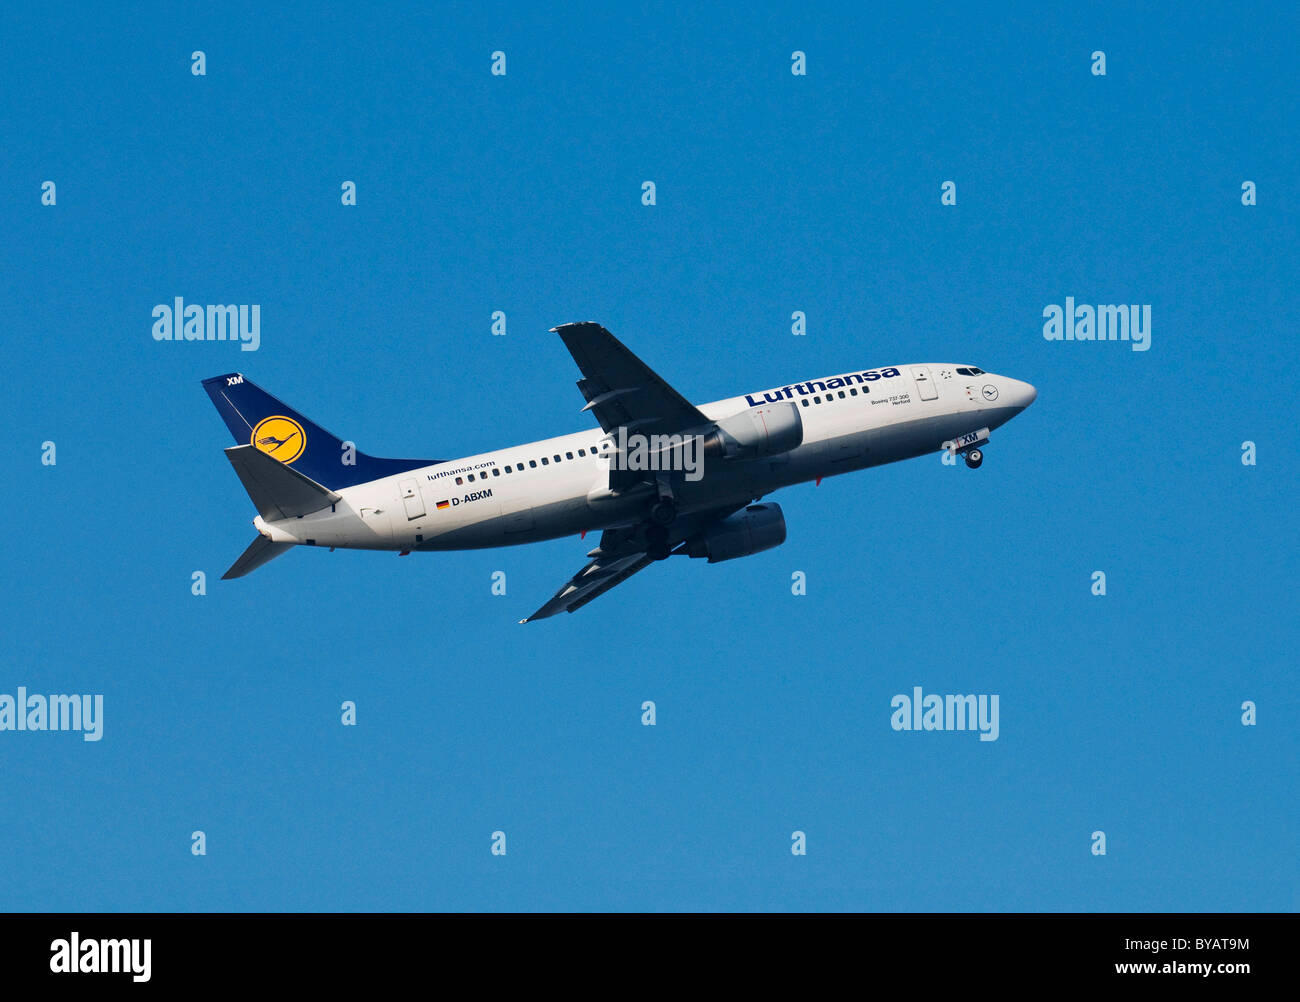 Aircraft of Lufthansa airline, Boeing 737-300, plane named Herford, climbing - Stock Image